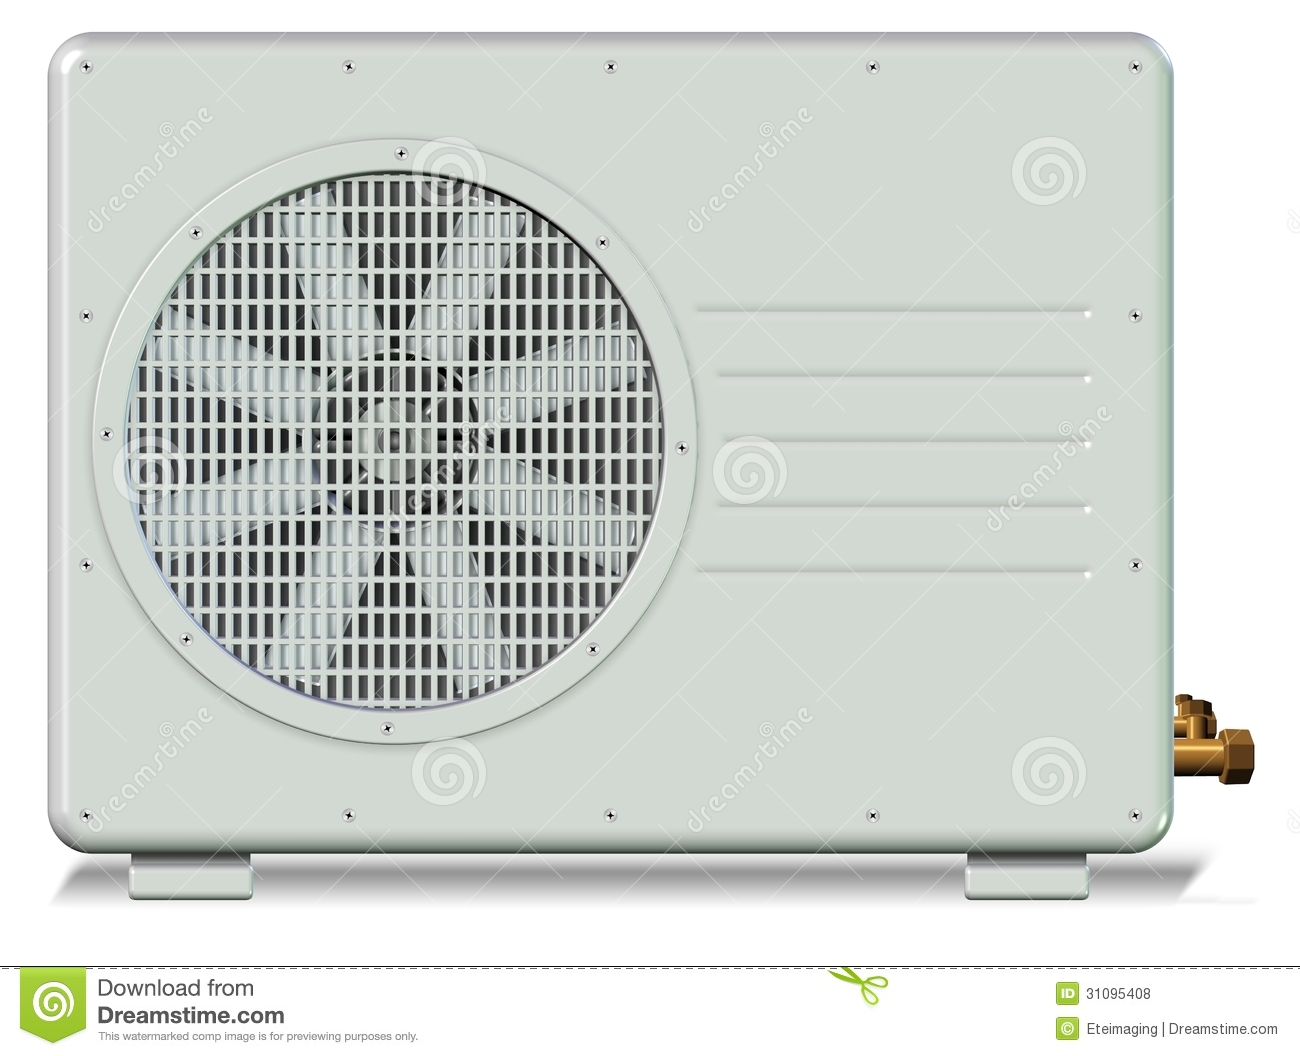 Air Conditioner Royalty Free Stock Photos Image: 31095408 #81A229